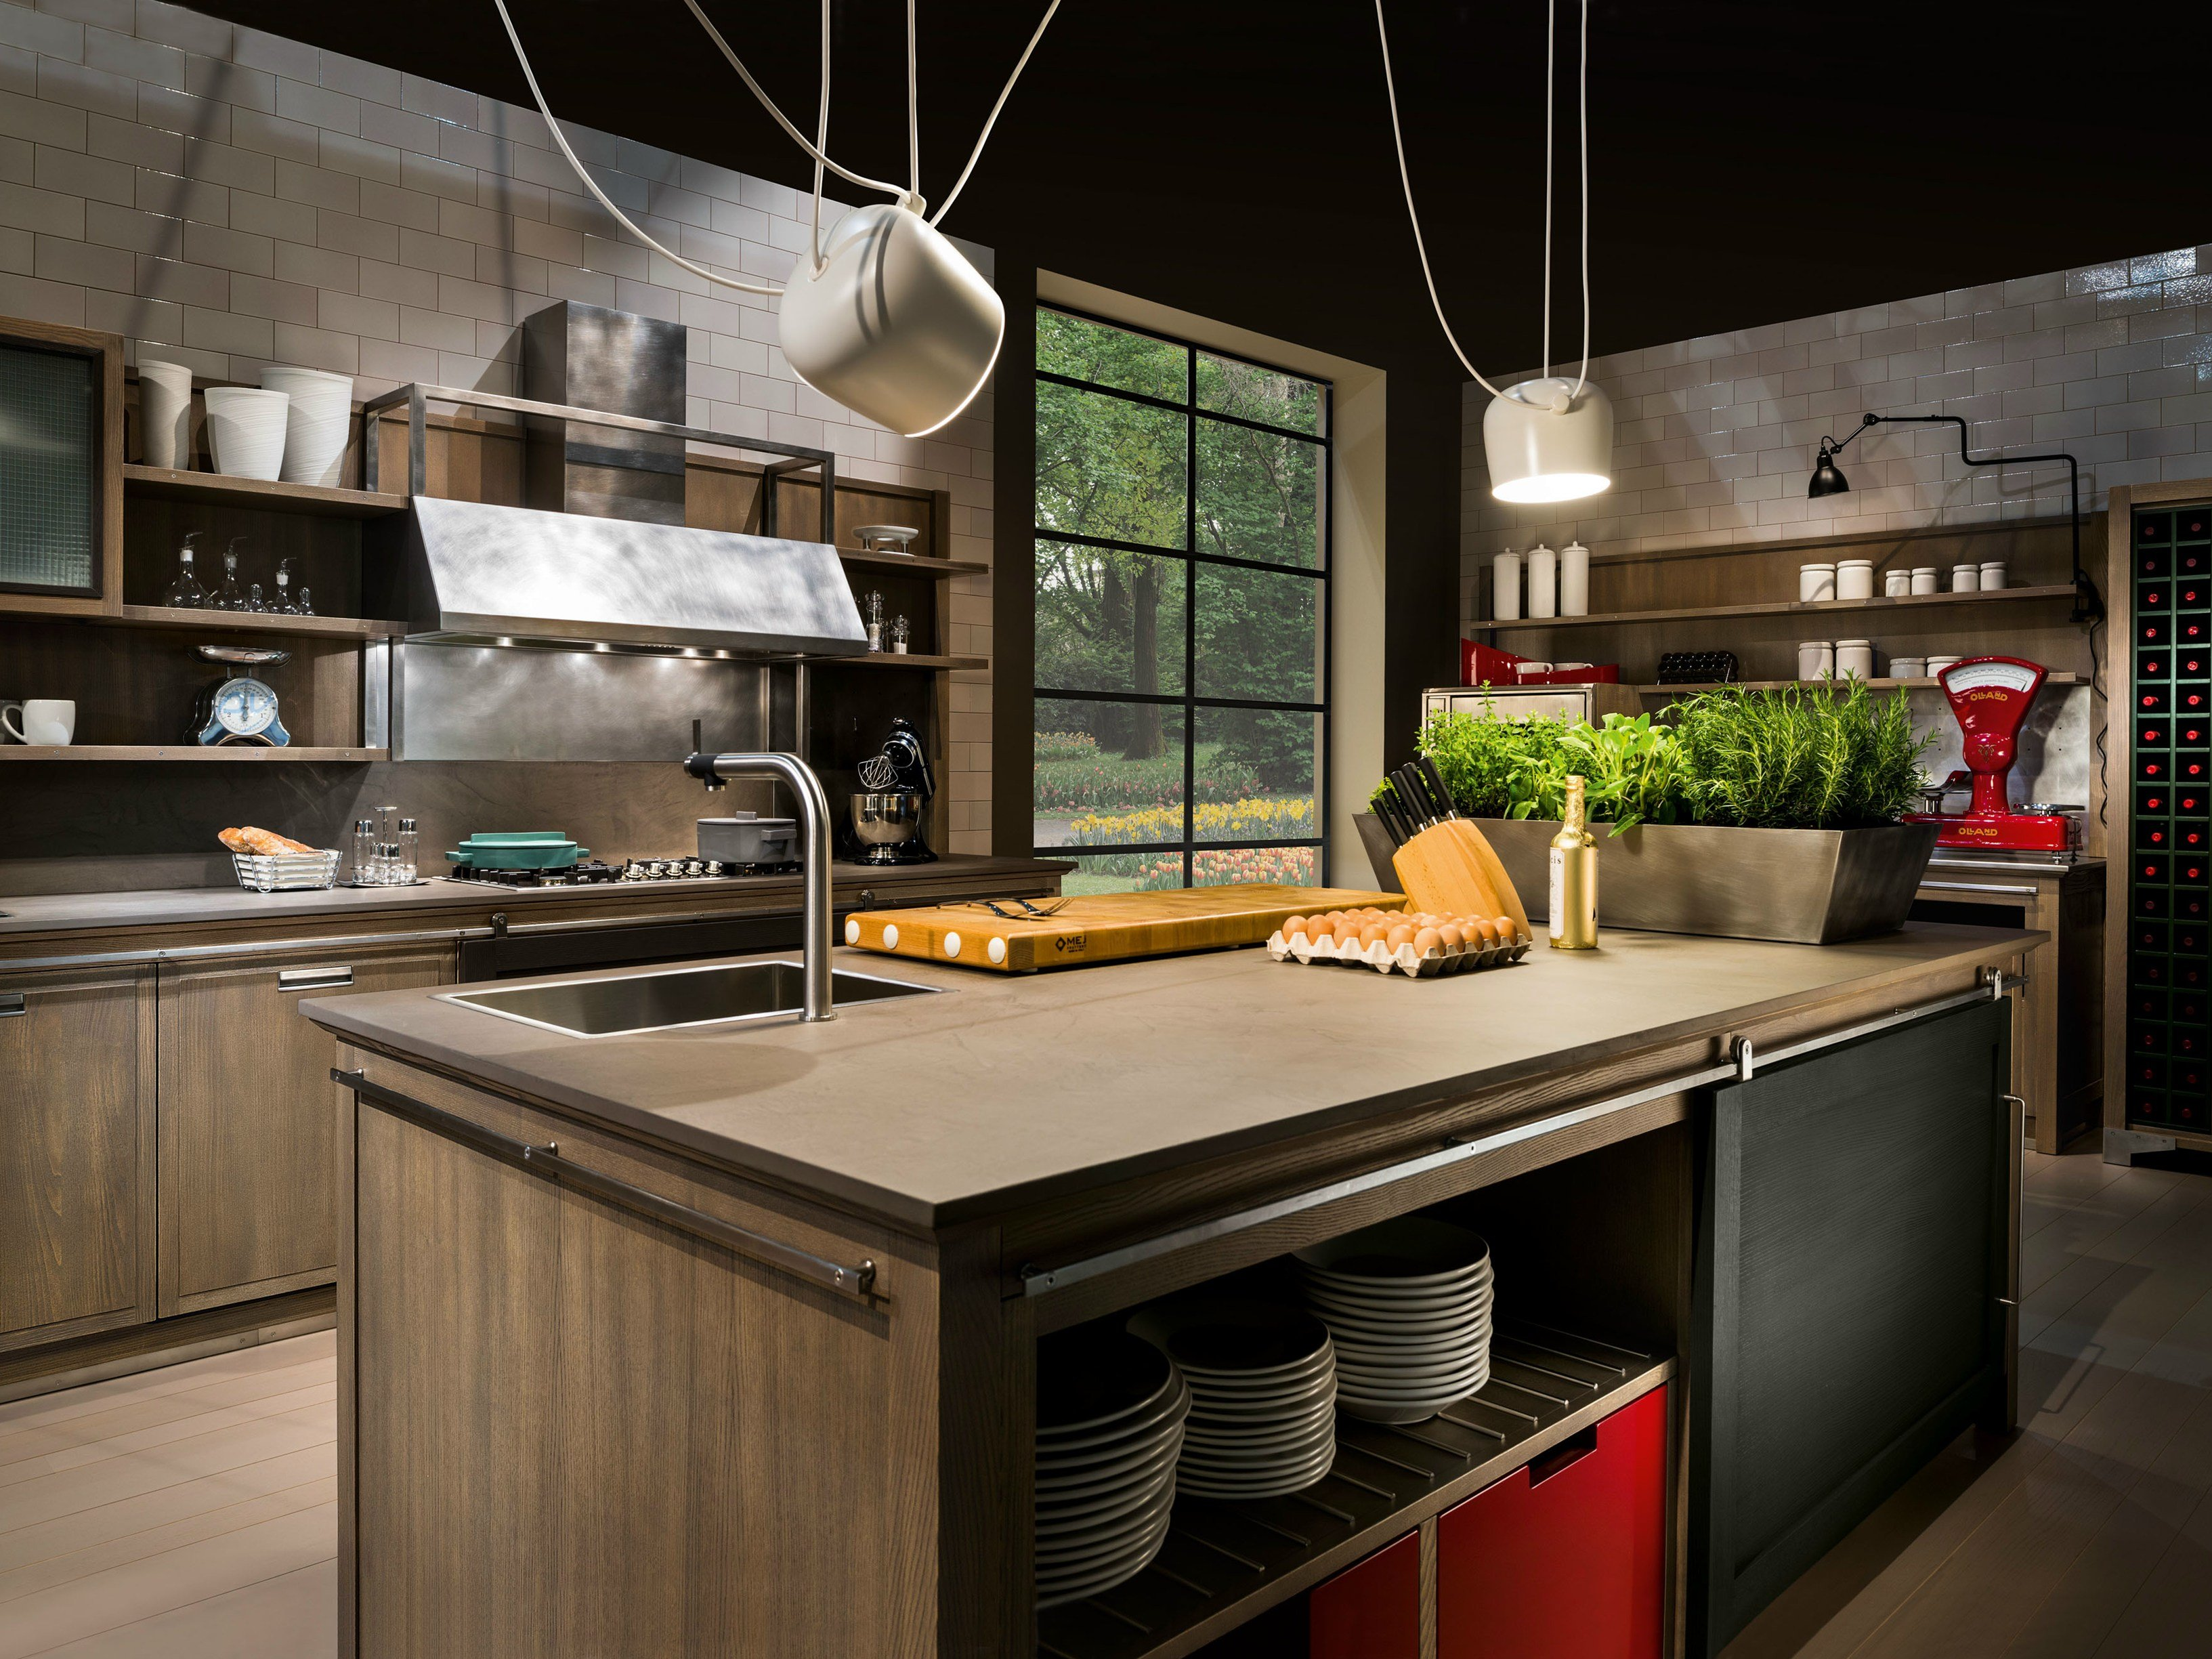 INDUSTRIAL CHIC Cucina Con Isola By L'Ottocento #BA1014 3266 2449 Cucine Stile Industrial Chic